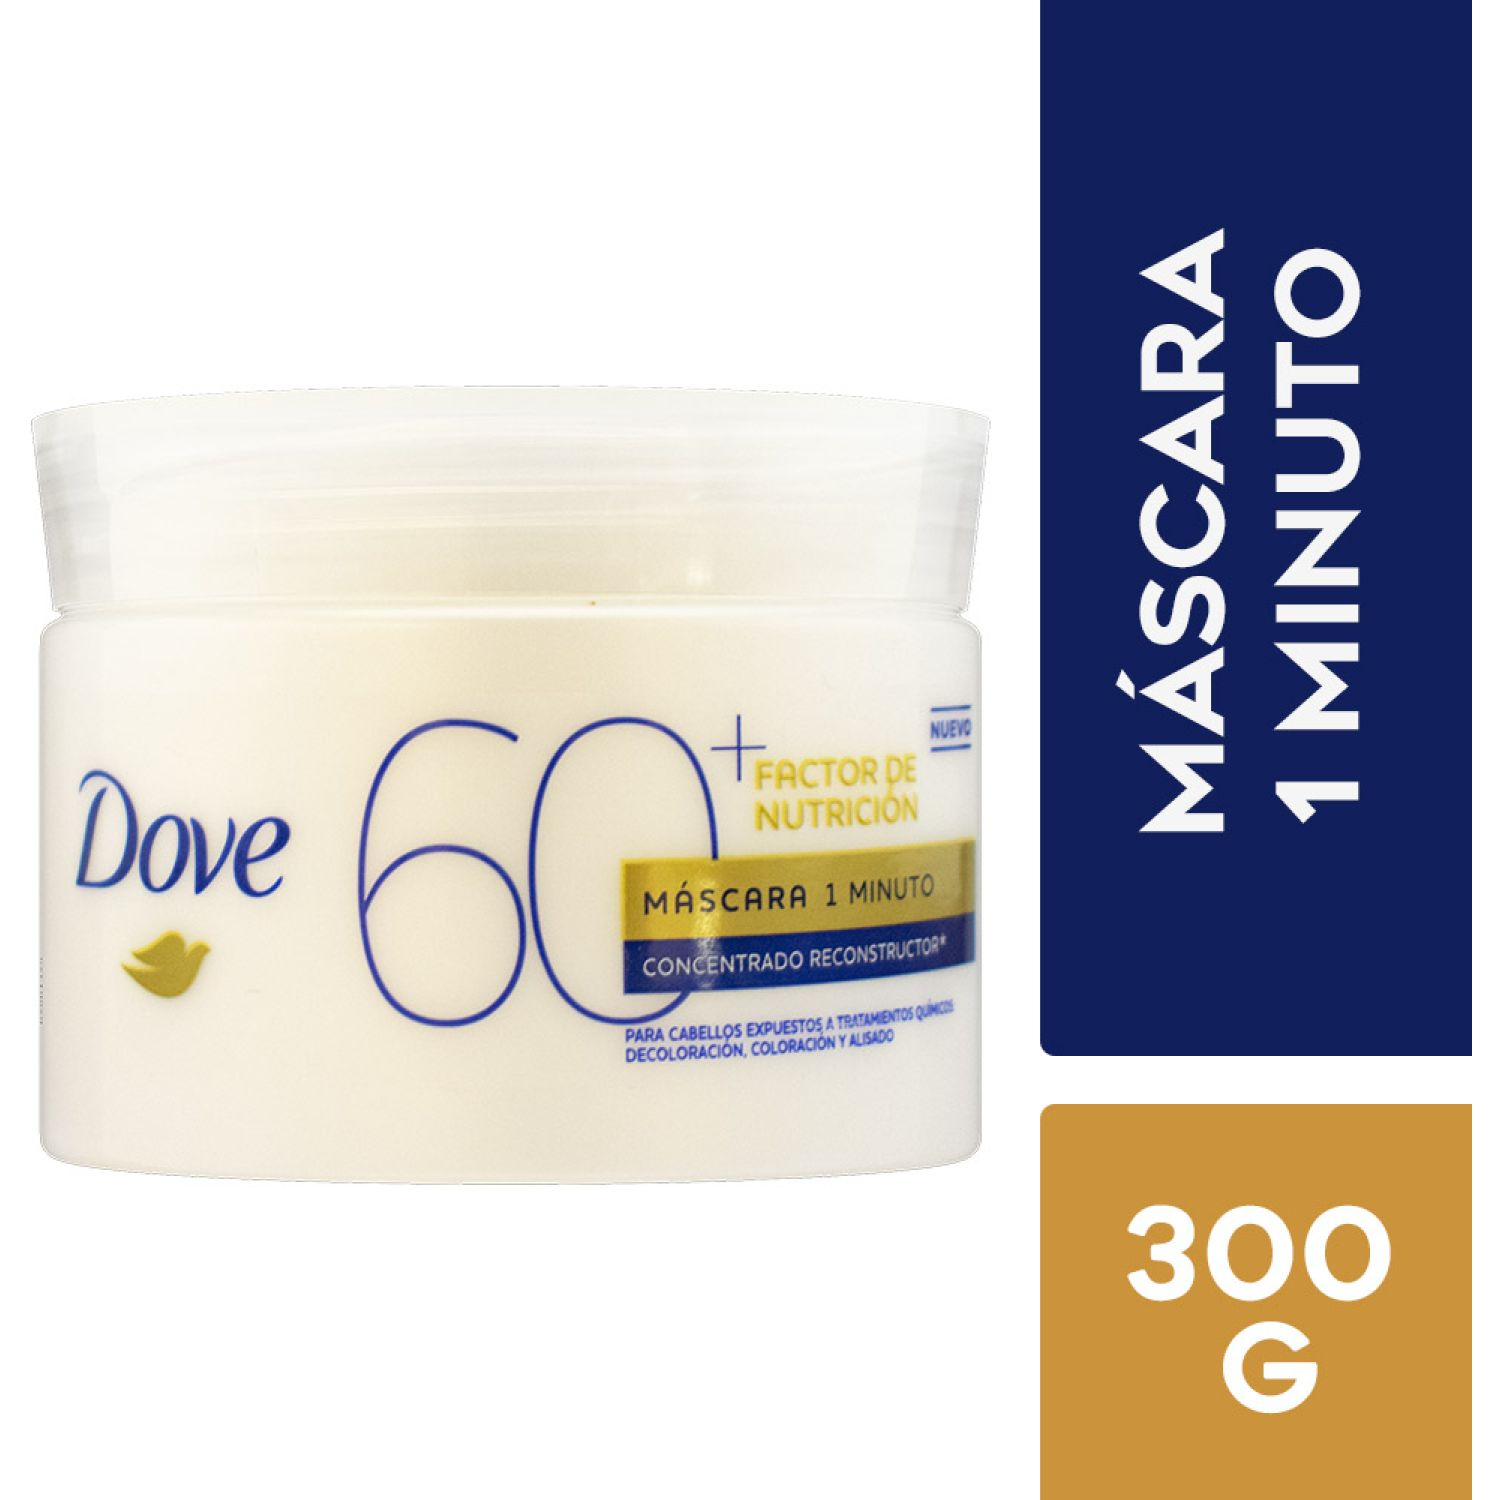 DOVE Mascarilla 1 Minuto Factor Nutrición60 + 300g Sin color Mascarillas